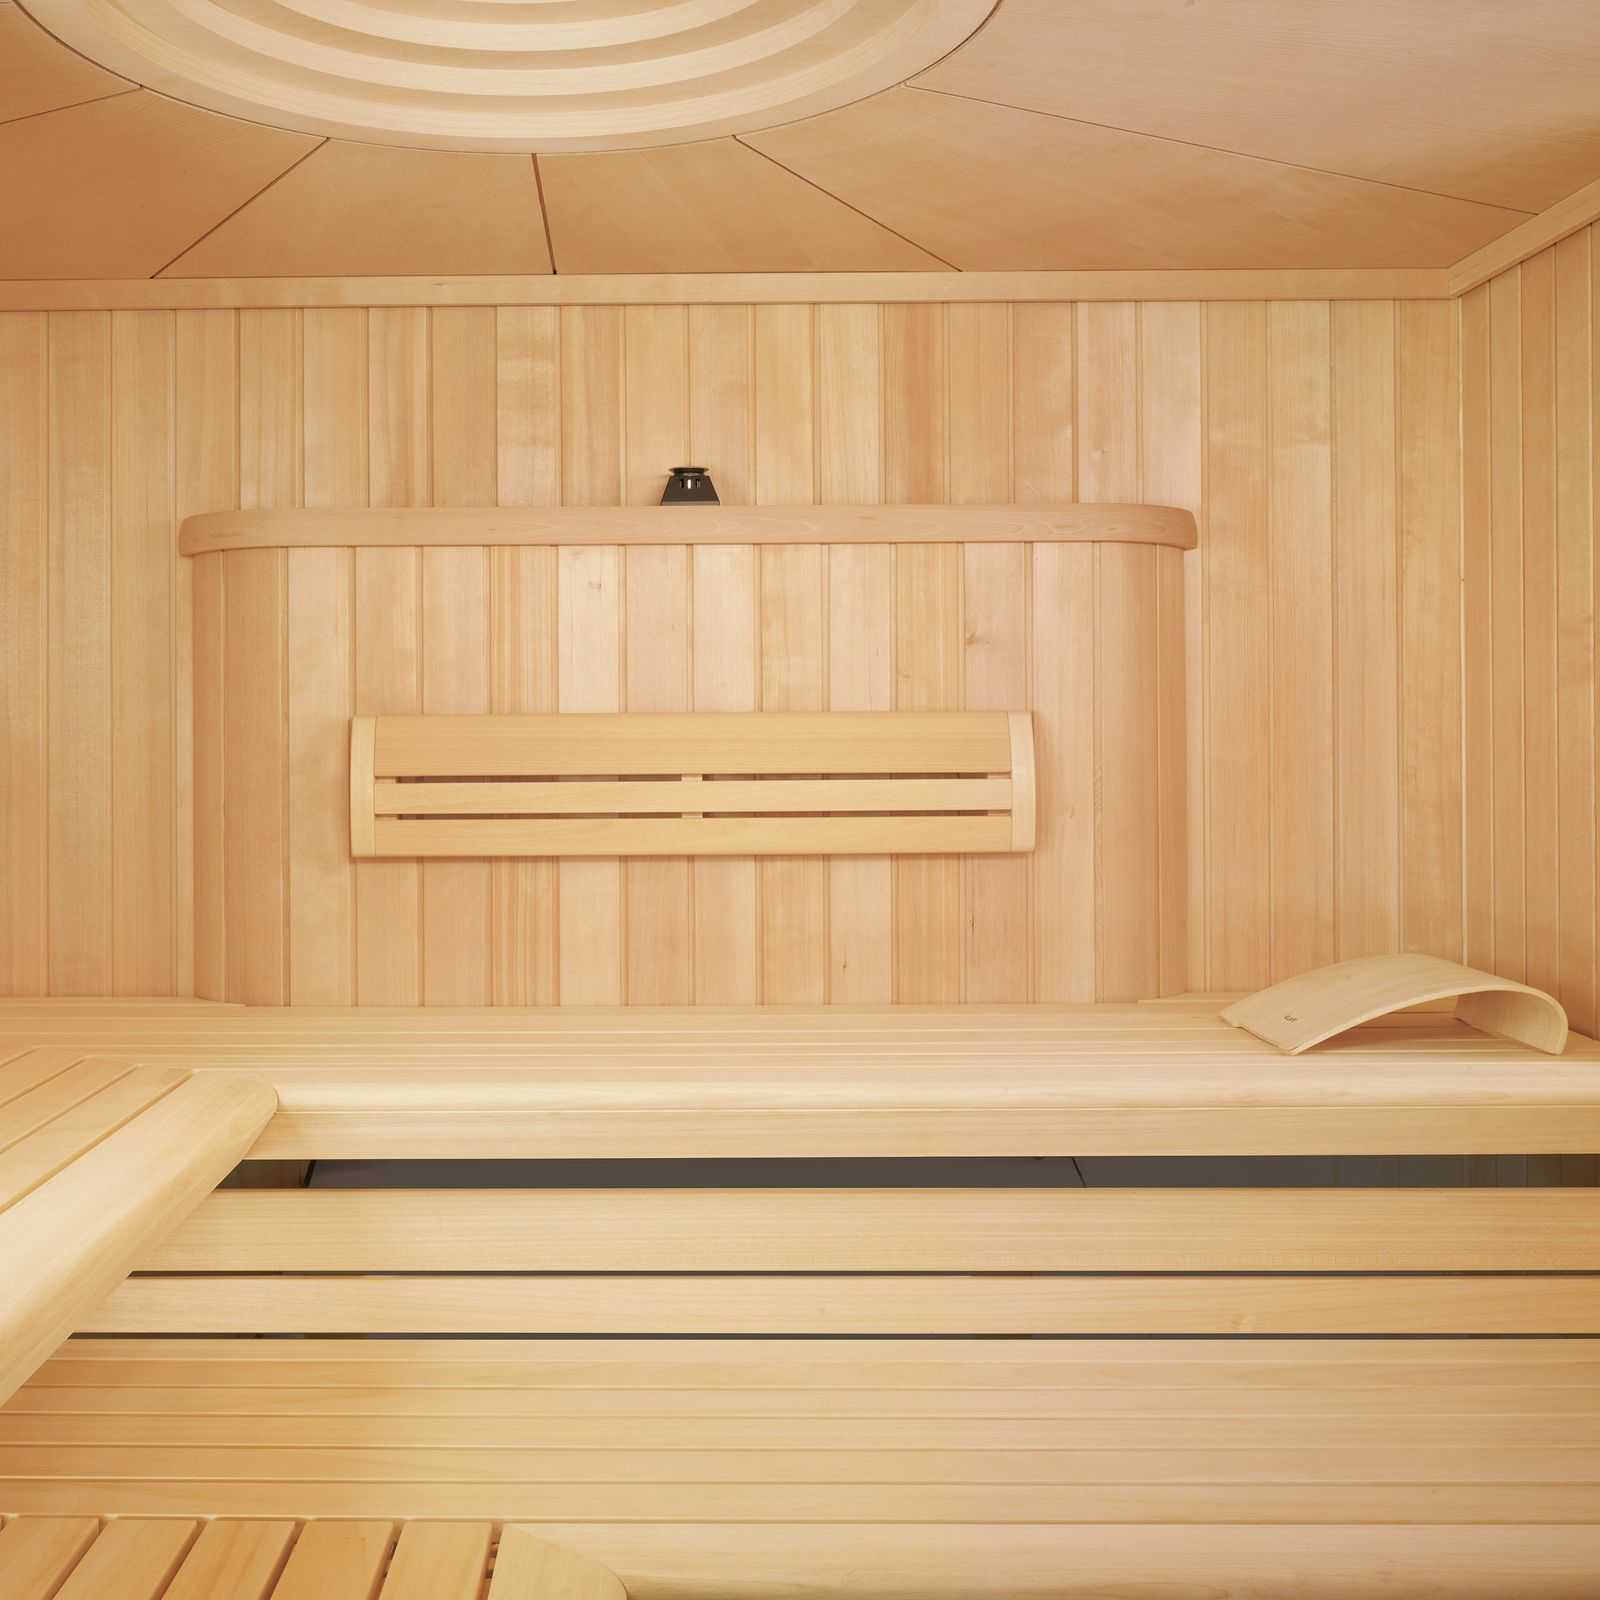 16 Attractive Window Seat Designs For Pleasant Relaxation: CHARISMA Sauna: The Sauna With Shower Area